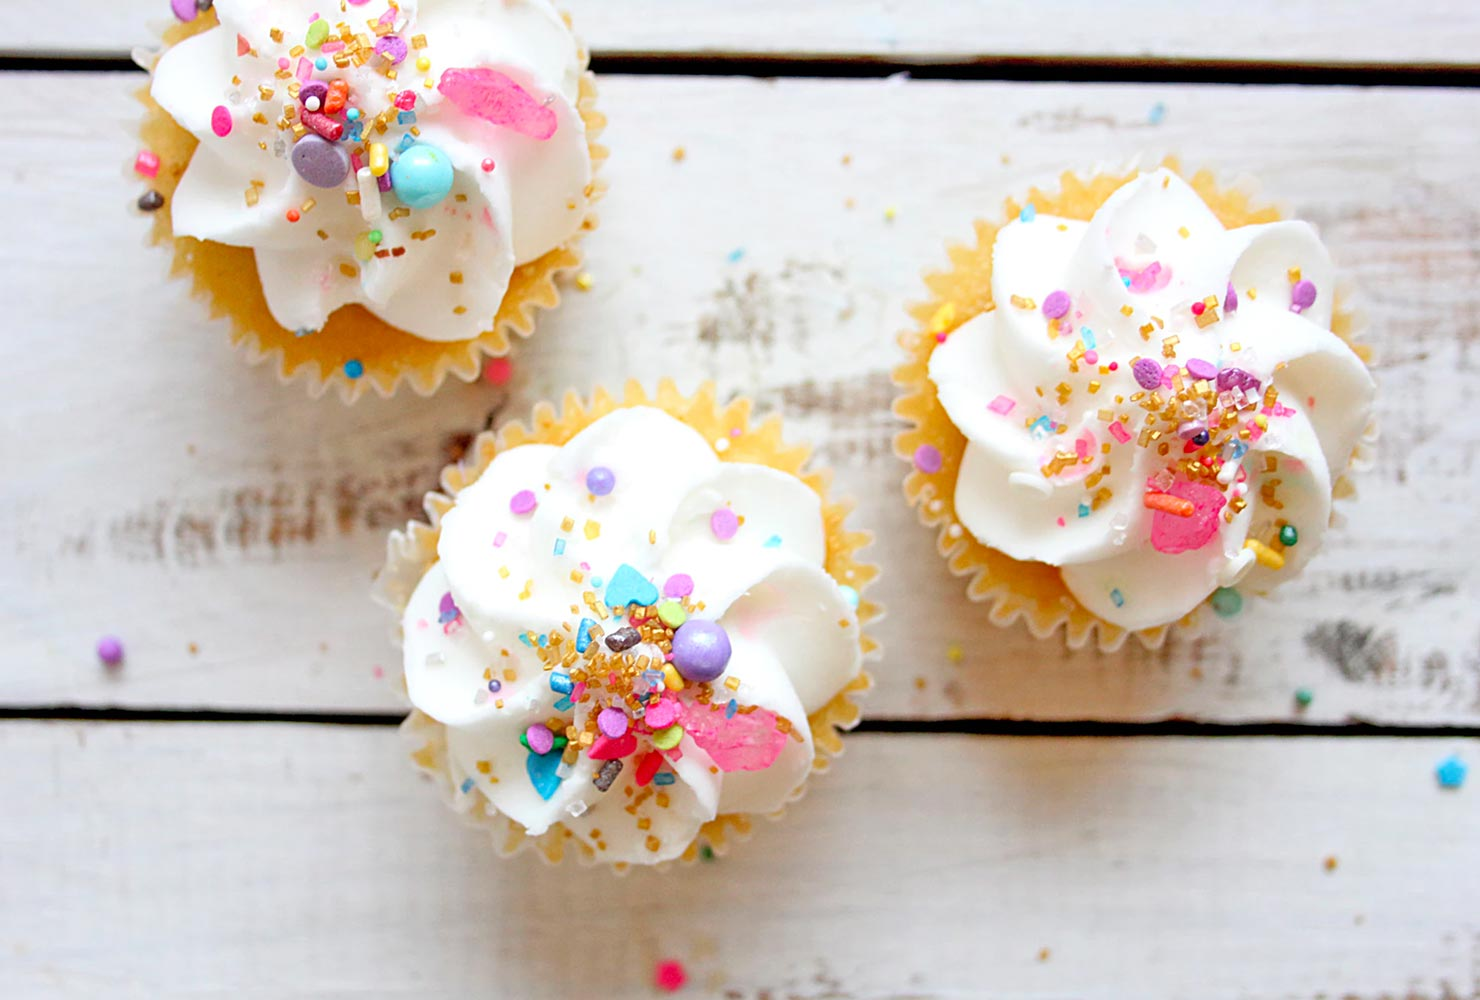 Cupcakes with colorful sprinkles.